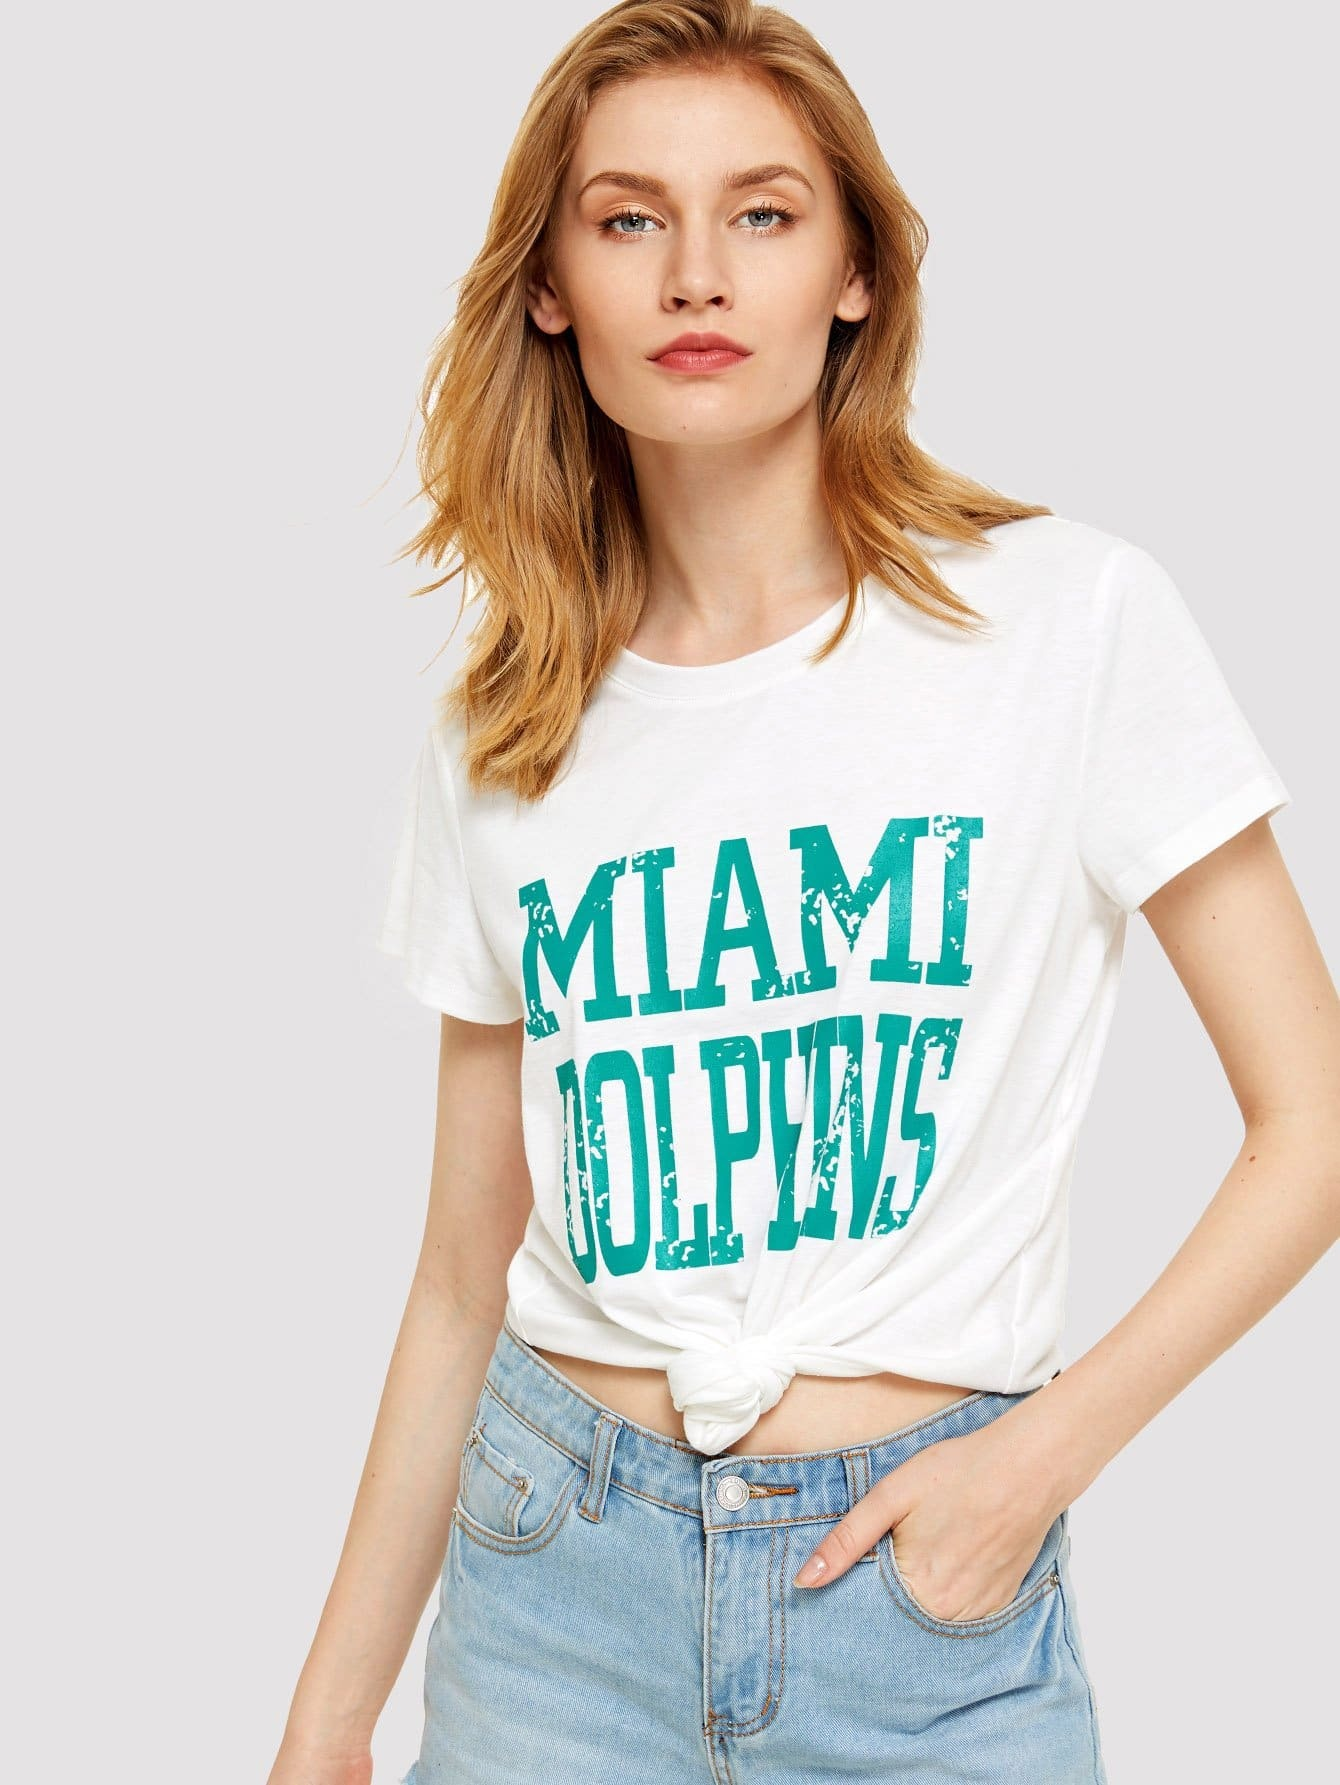 Distressed Letter Print T-shirt letter and gesture print t shirt